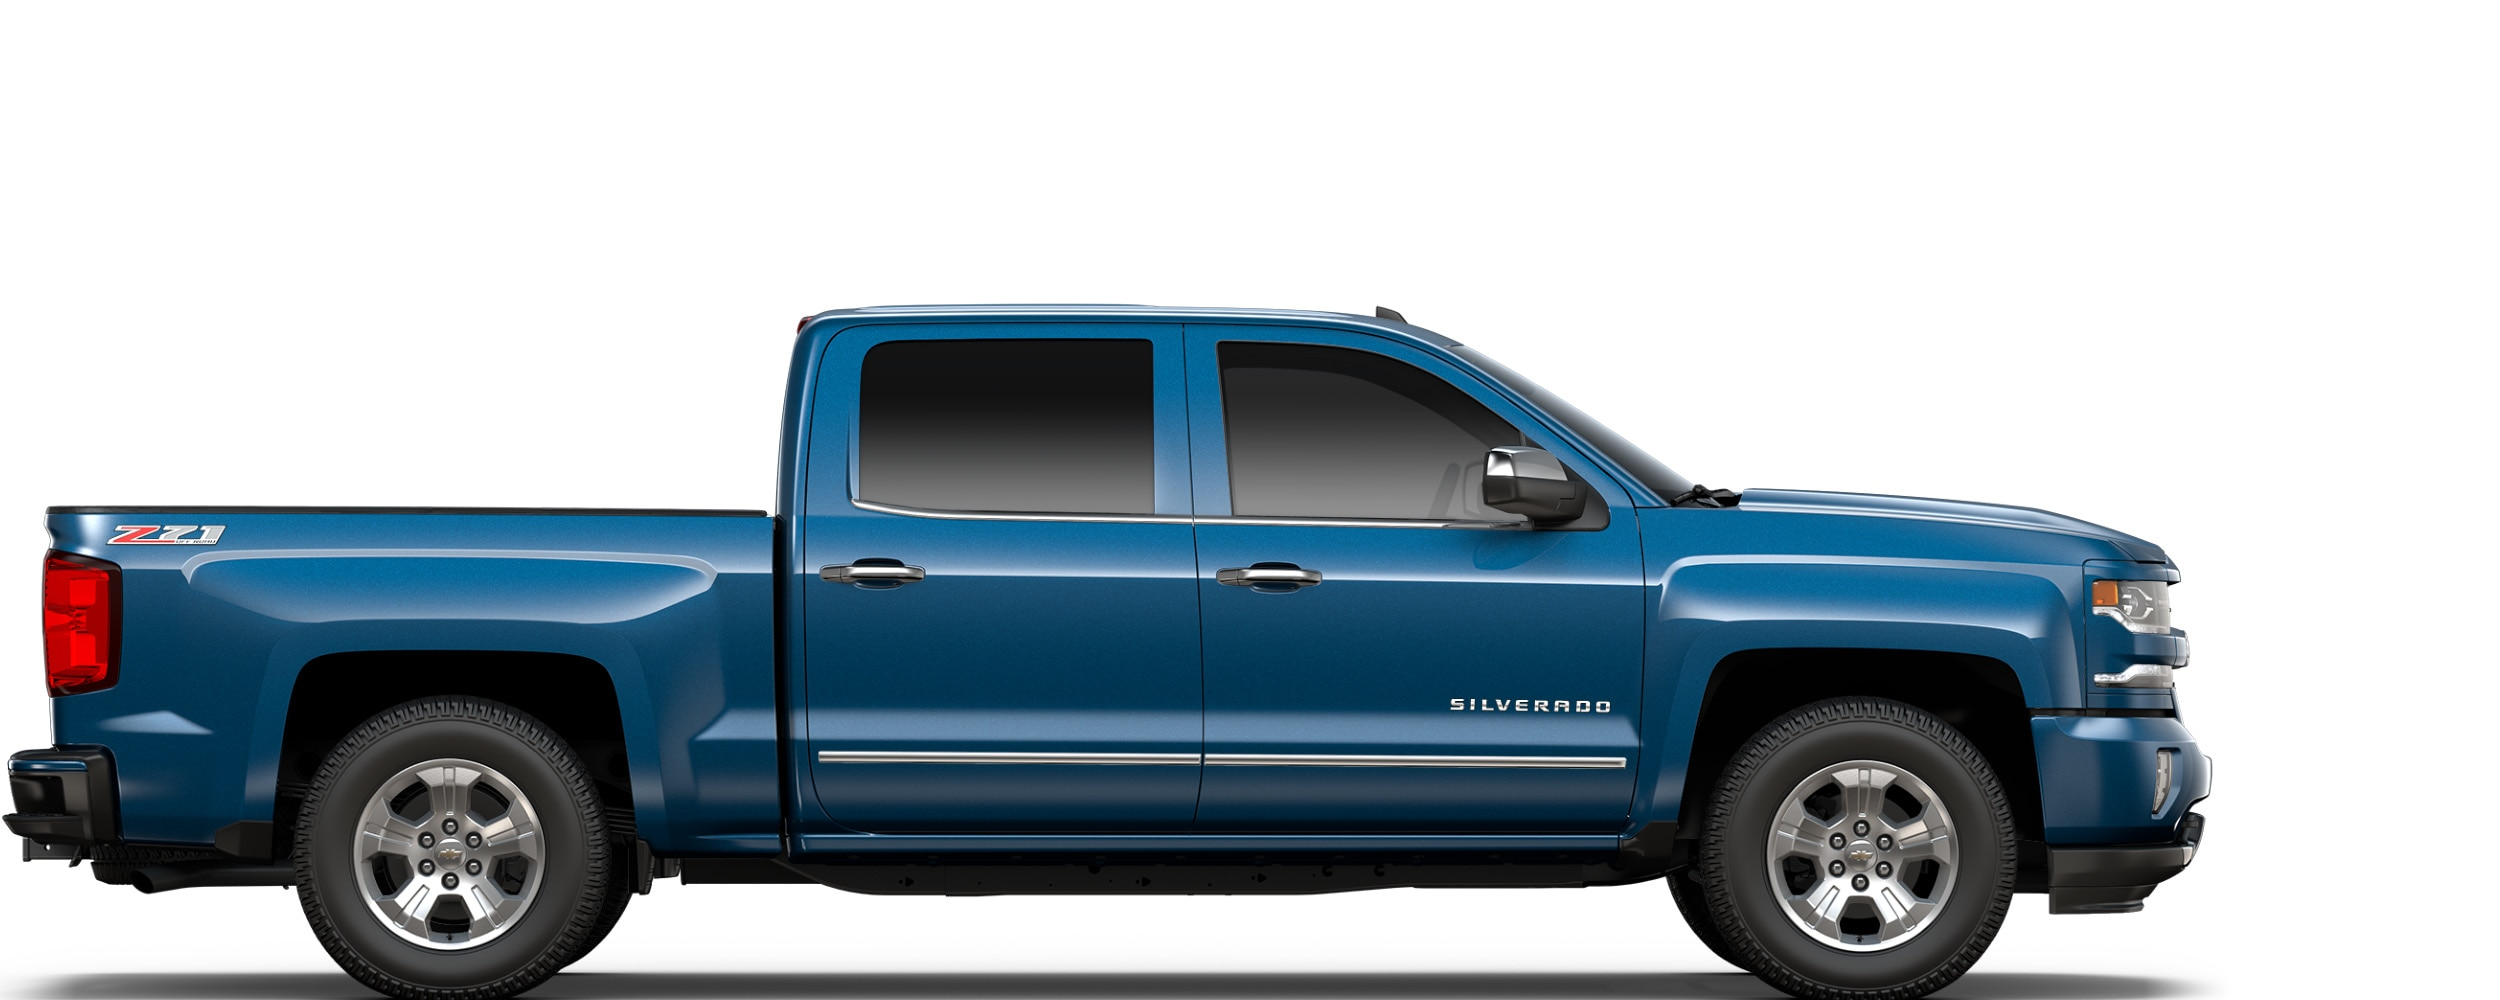 driver depth car models in duramax hd silverado diesel reviews and truck photo chevrolet original review drive s model